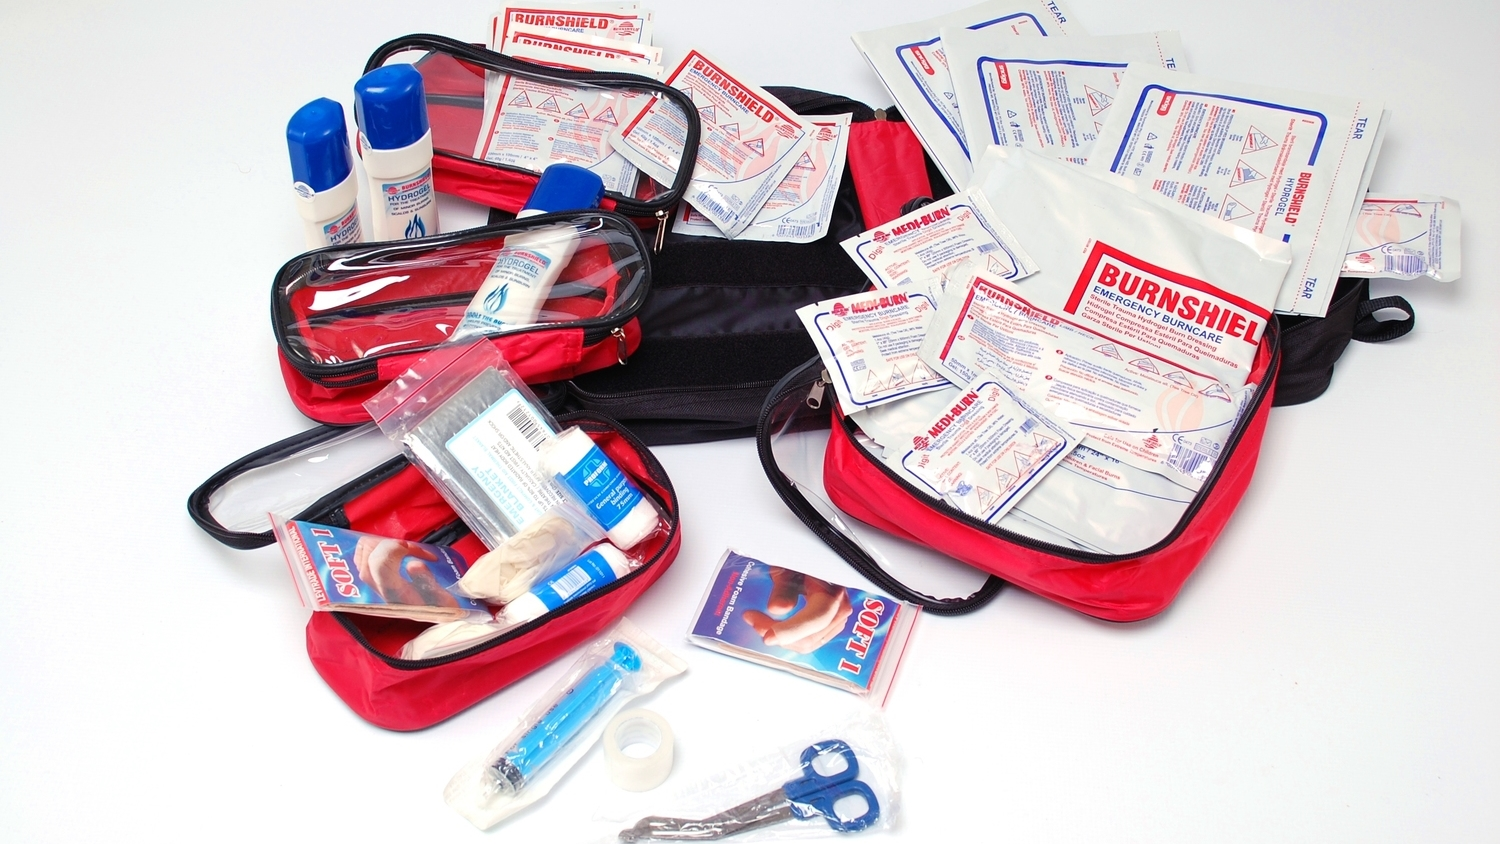 Burnshield Burn Kits